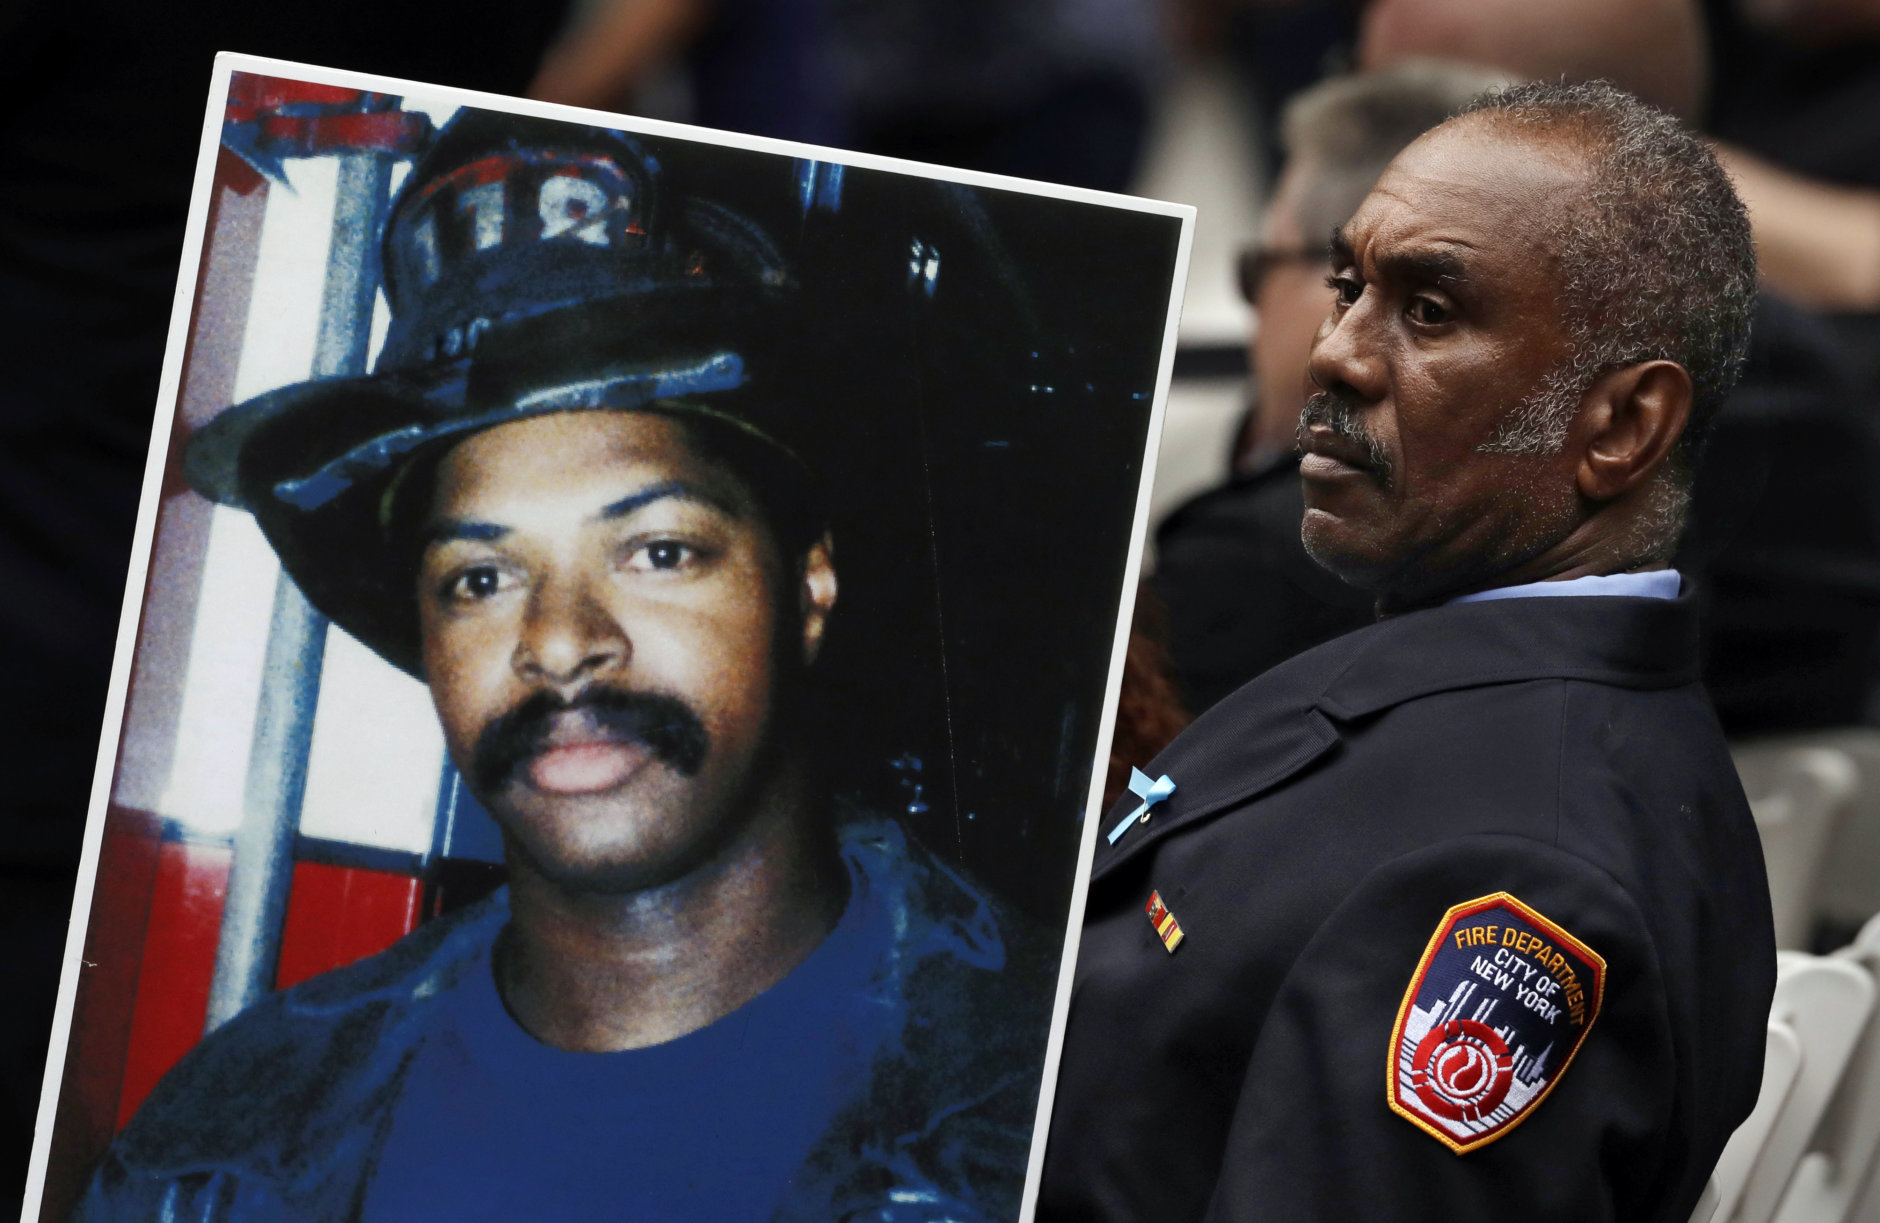 Retired New York firefighter Bruce Stanley carries a photograph of fellow firefighter Liam Smith Jr. during a ceremony, Tuesday, Sept. 11, 2018, in New York, at the World Trade Center, marking the 17th anniversary of the terrorist attacks on the United States. Smith was one of 343 members of the fire department who were killed on Sept. 11, 2001. (AP Photo/Mark Lennihan)